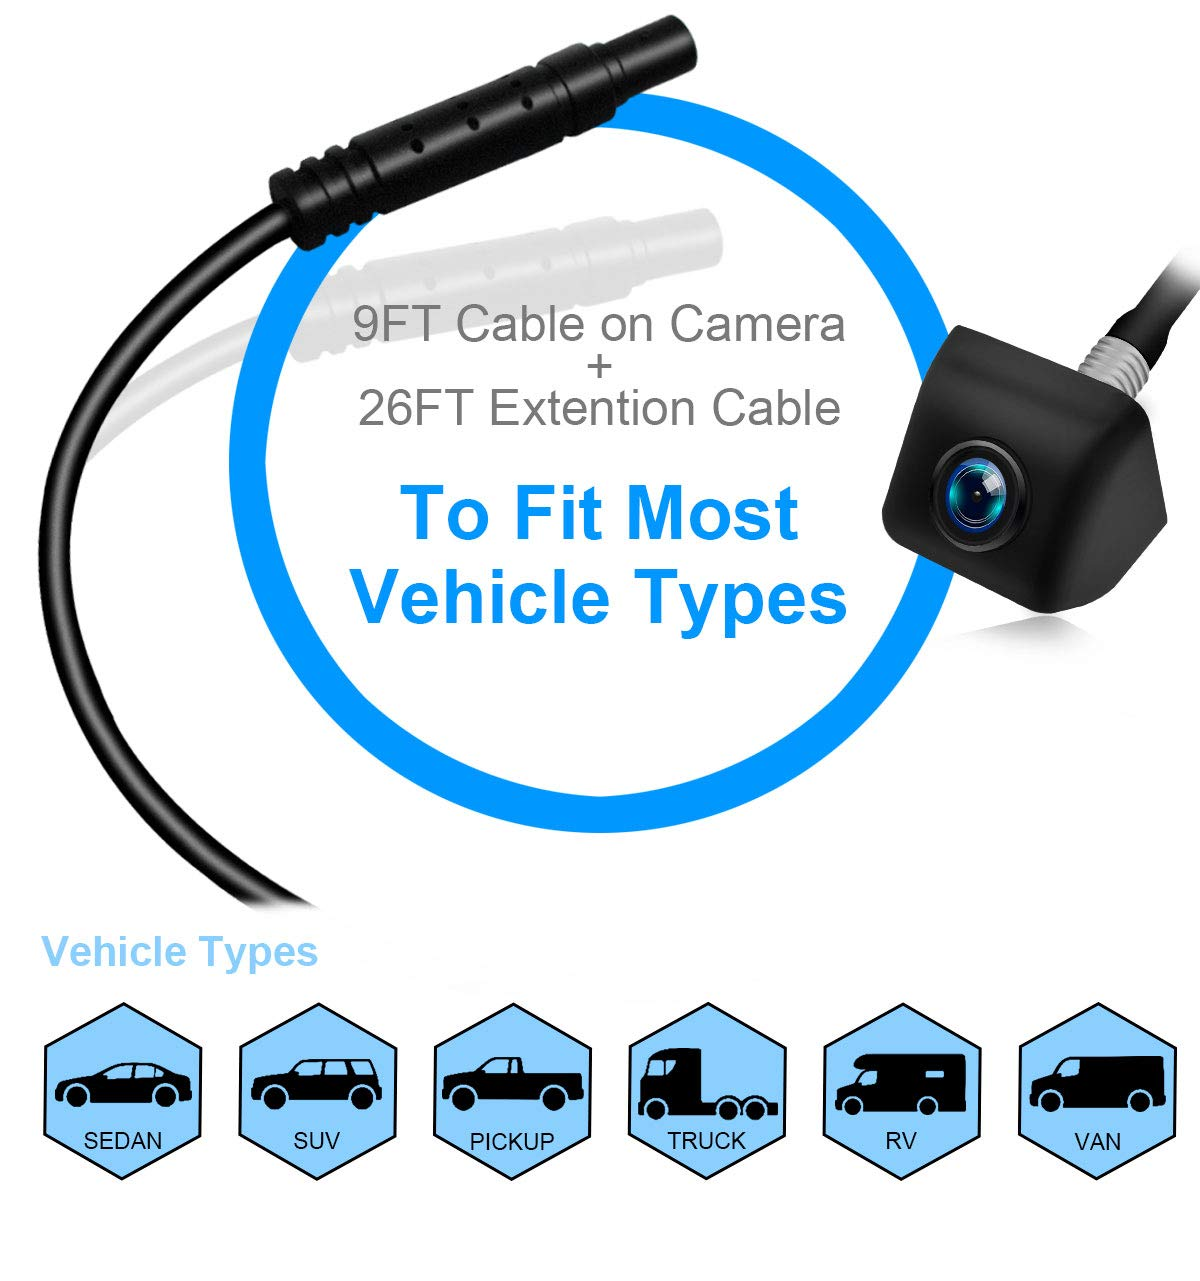 Vehicle Backup Camera,Exclusive Remote Control Rear View Camera IP69K Waterproof 170/° Wide Angle Reverse Camera CCD Super Night Vision PORMIDO Universal Front//Side//Back up Car Camera for Truck RV SUV